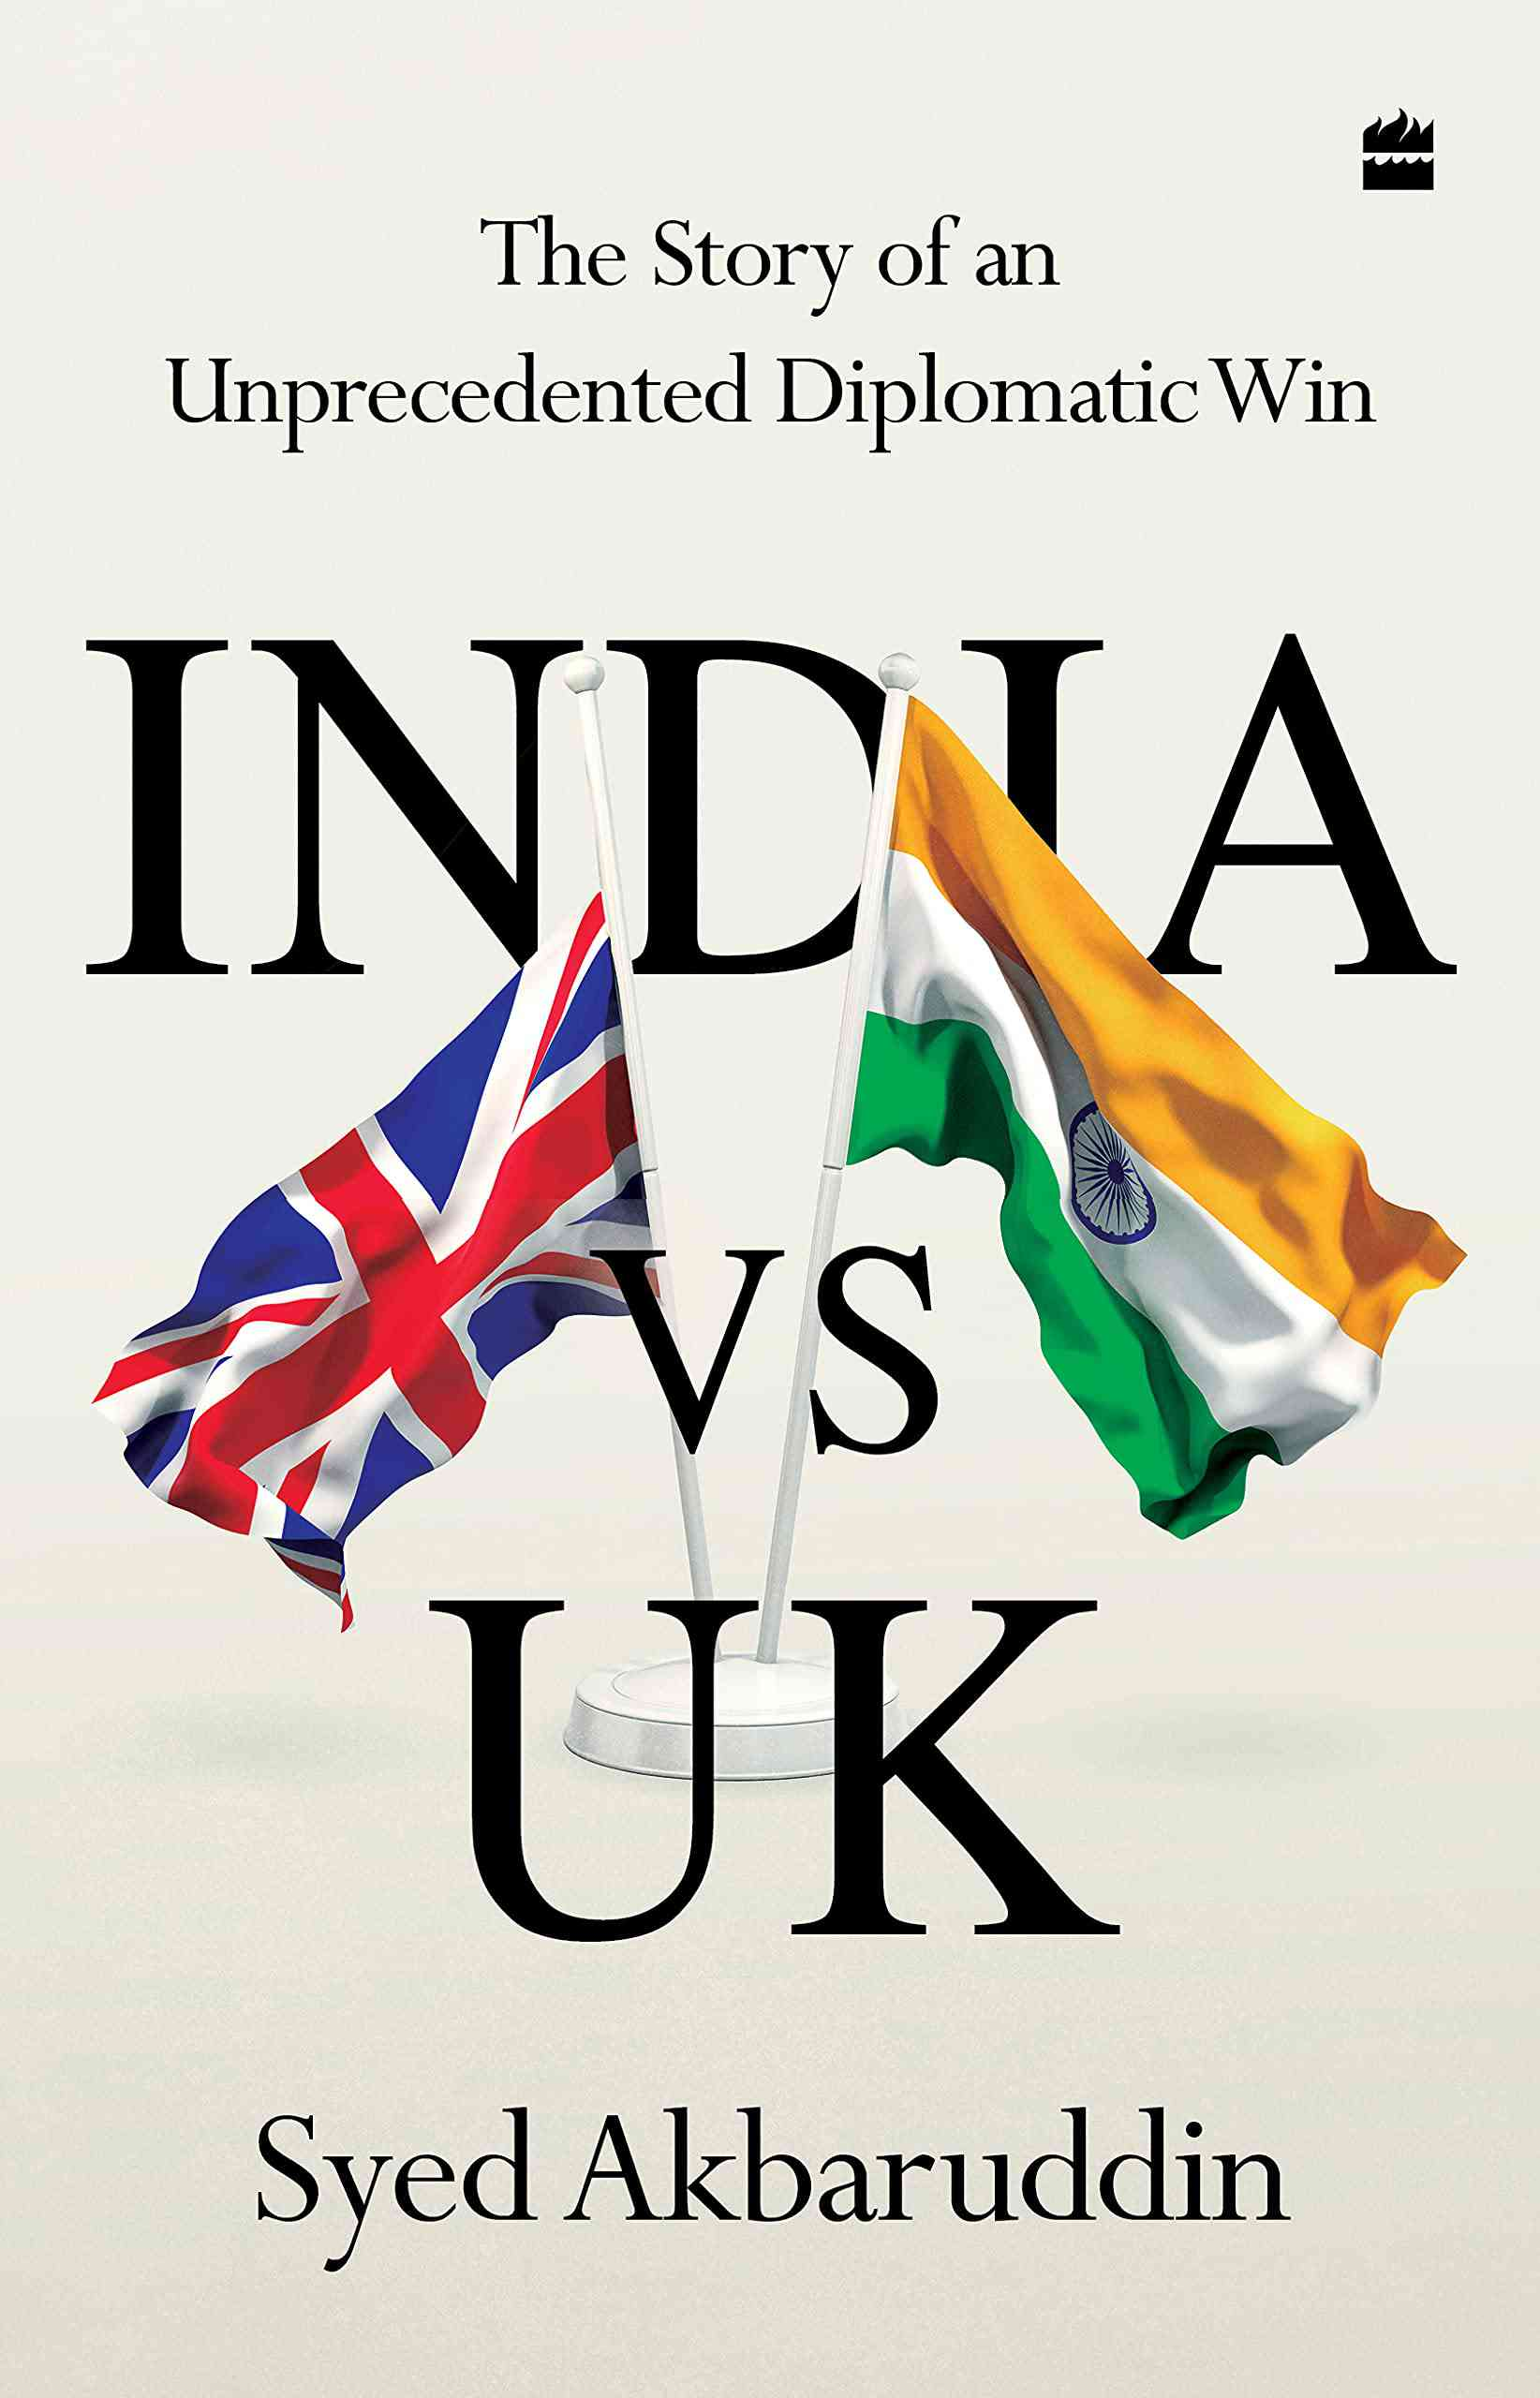 India vs UK: The Story of an Unprecedented Diplomatic Win